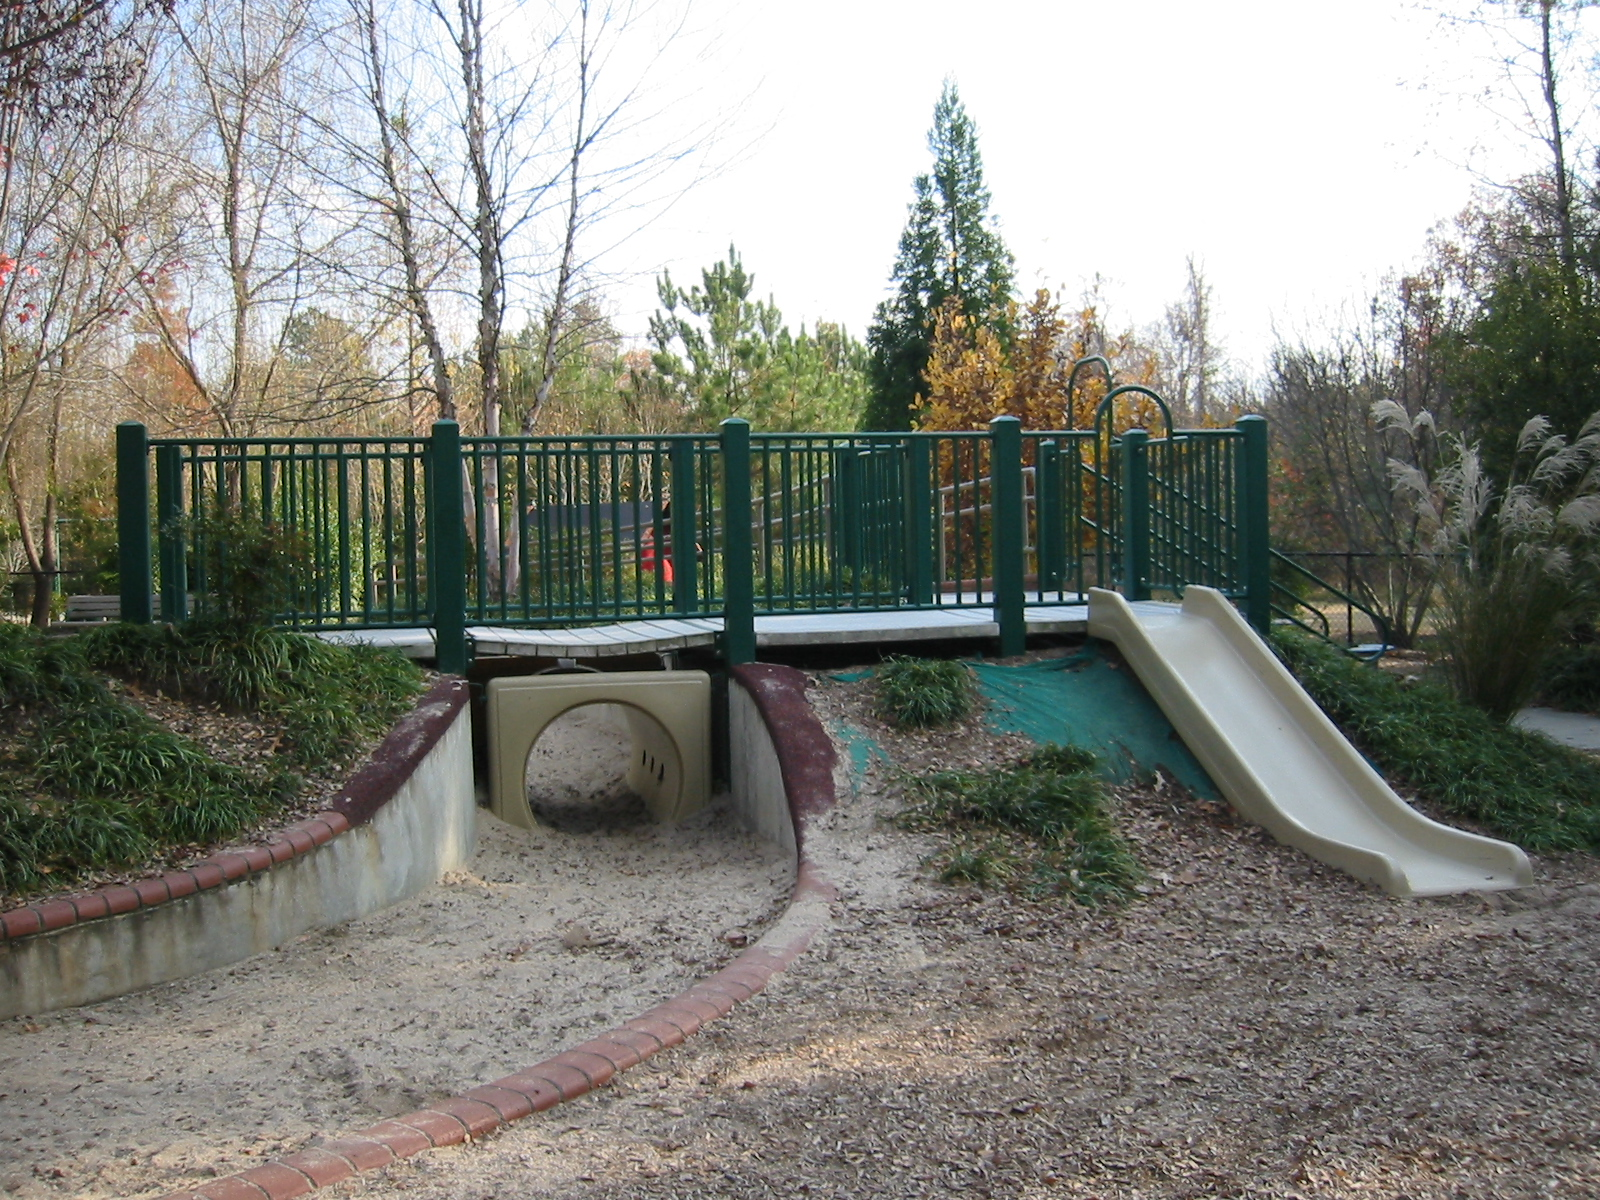 Pictures of Kids Together Park, Cary (Morrisville: to move ...